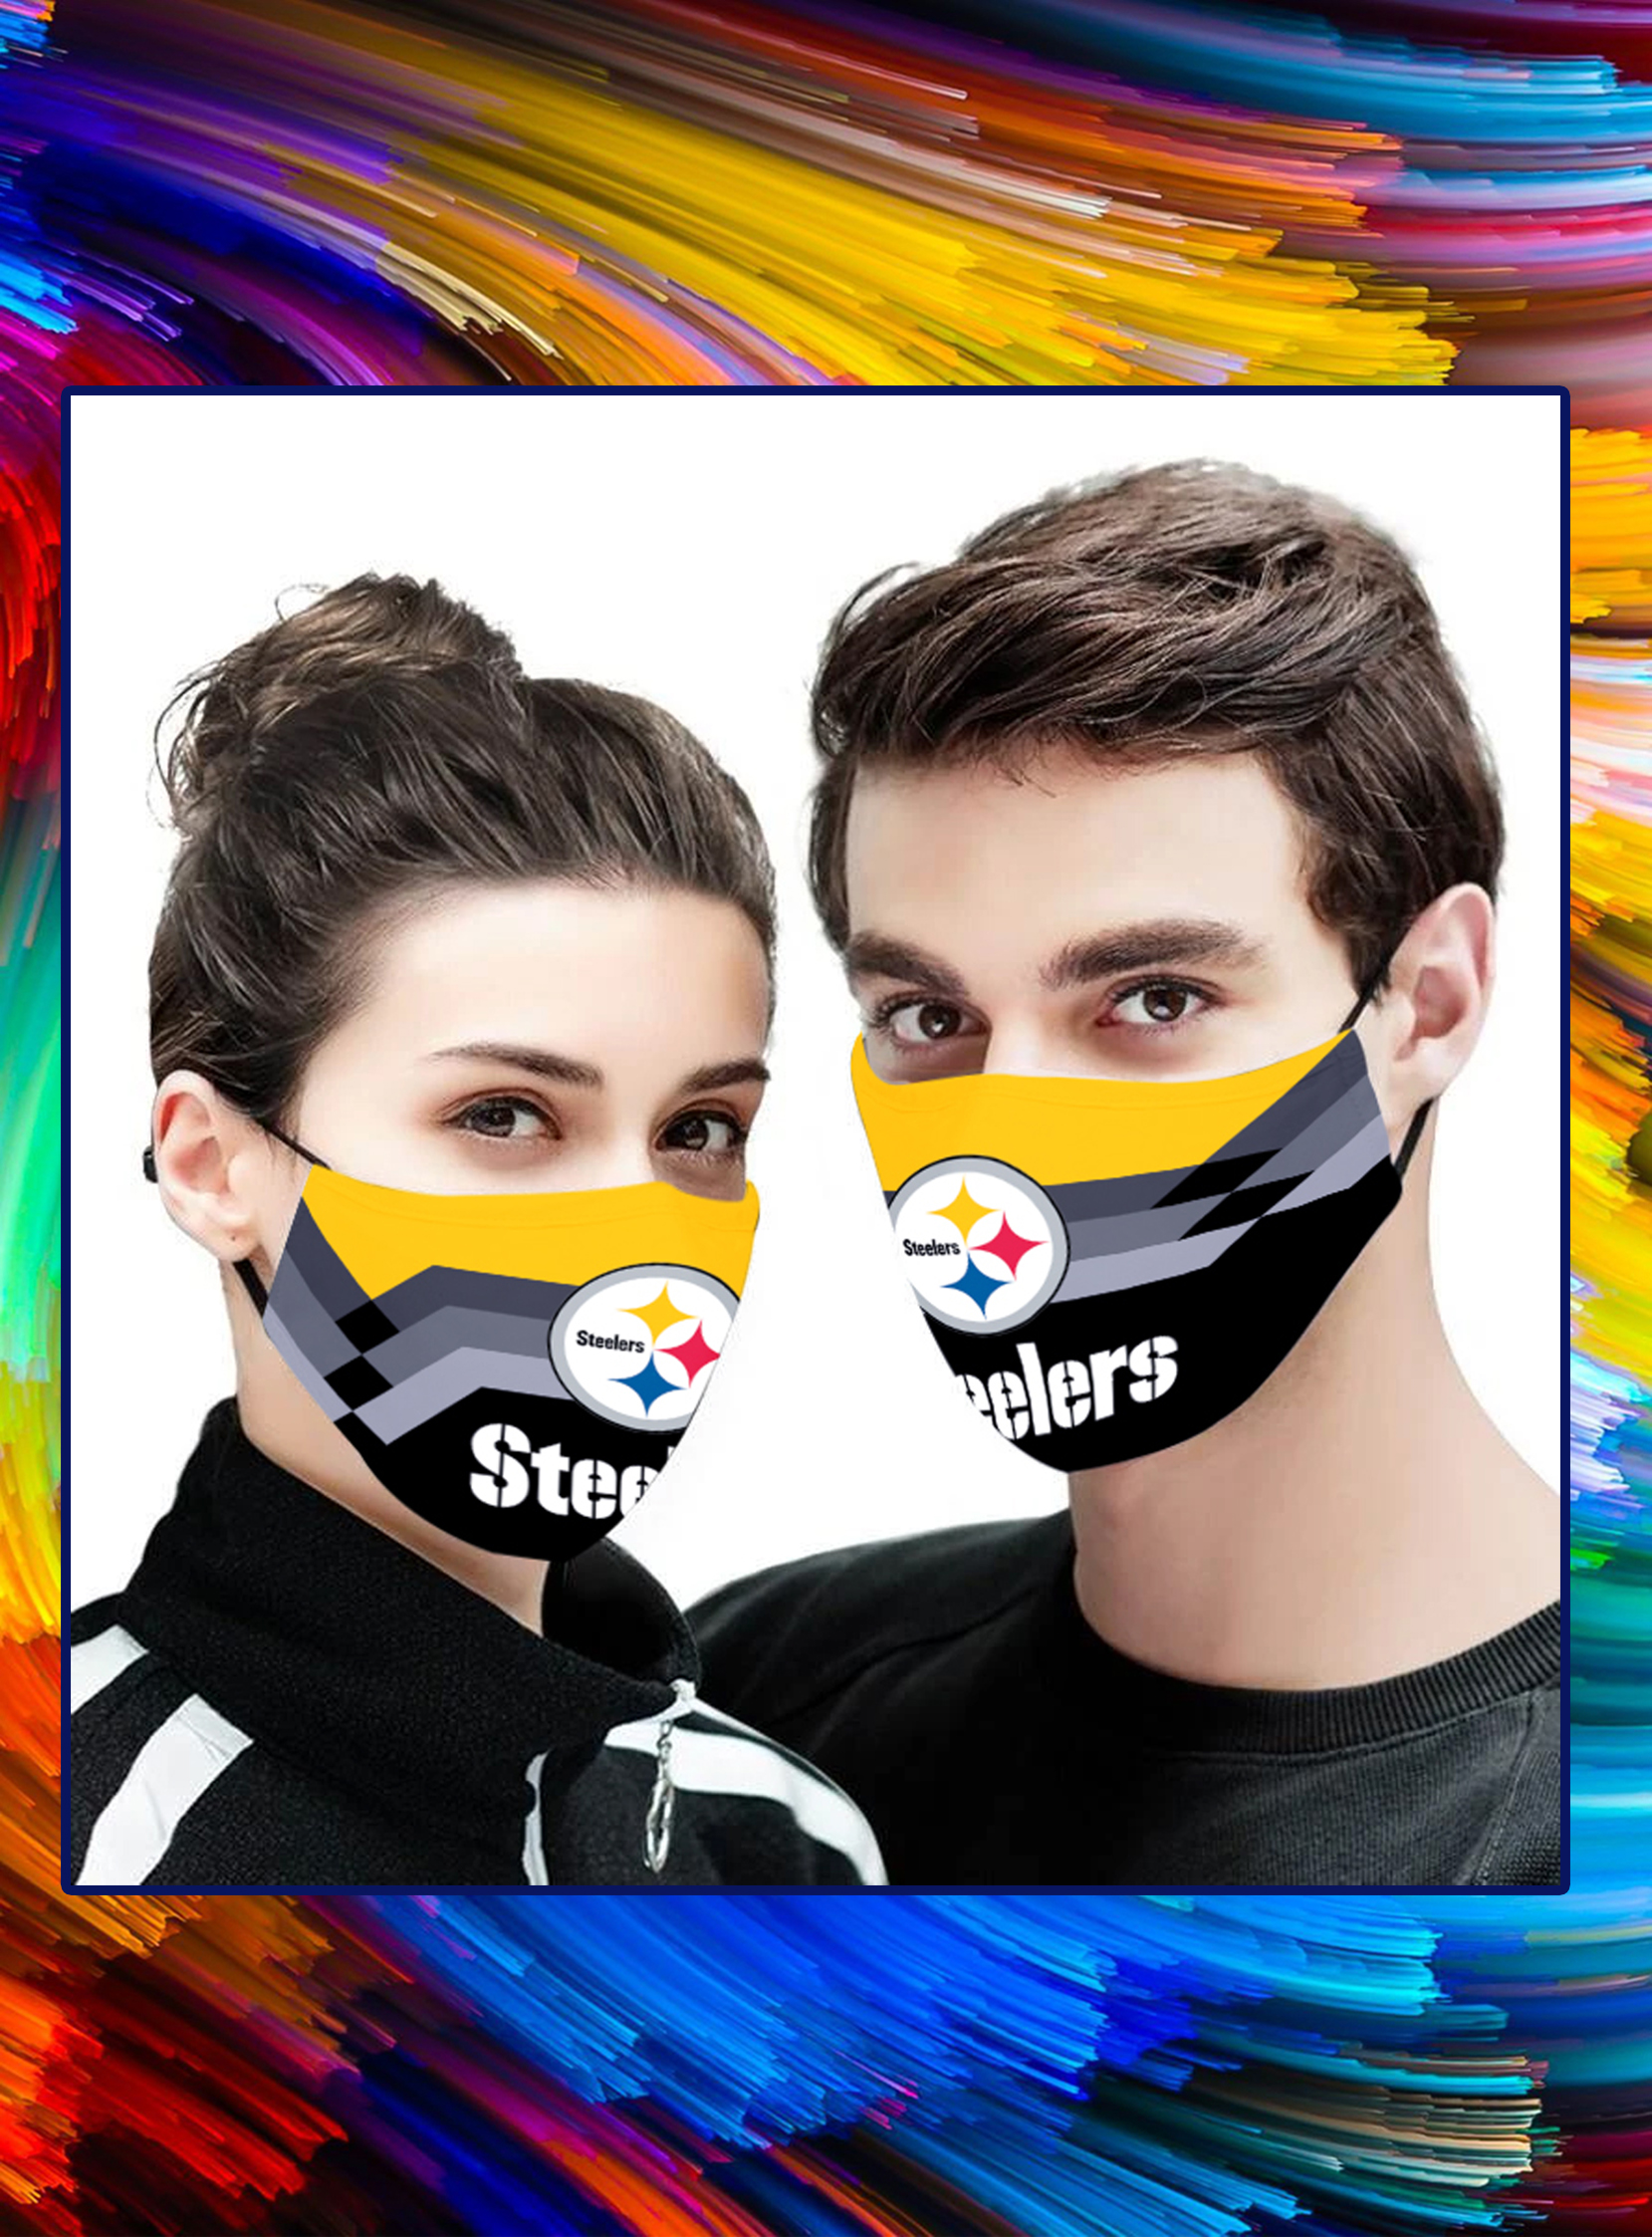 Pittsburgh steelers 3d face mask - pic 1